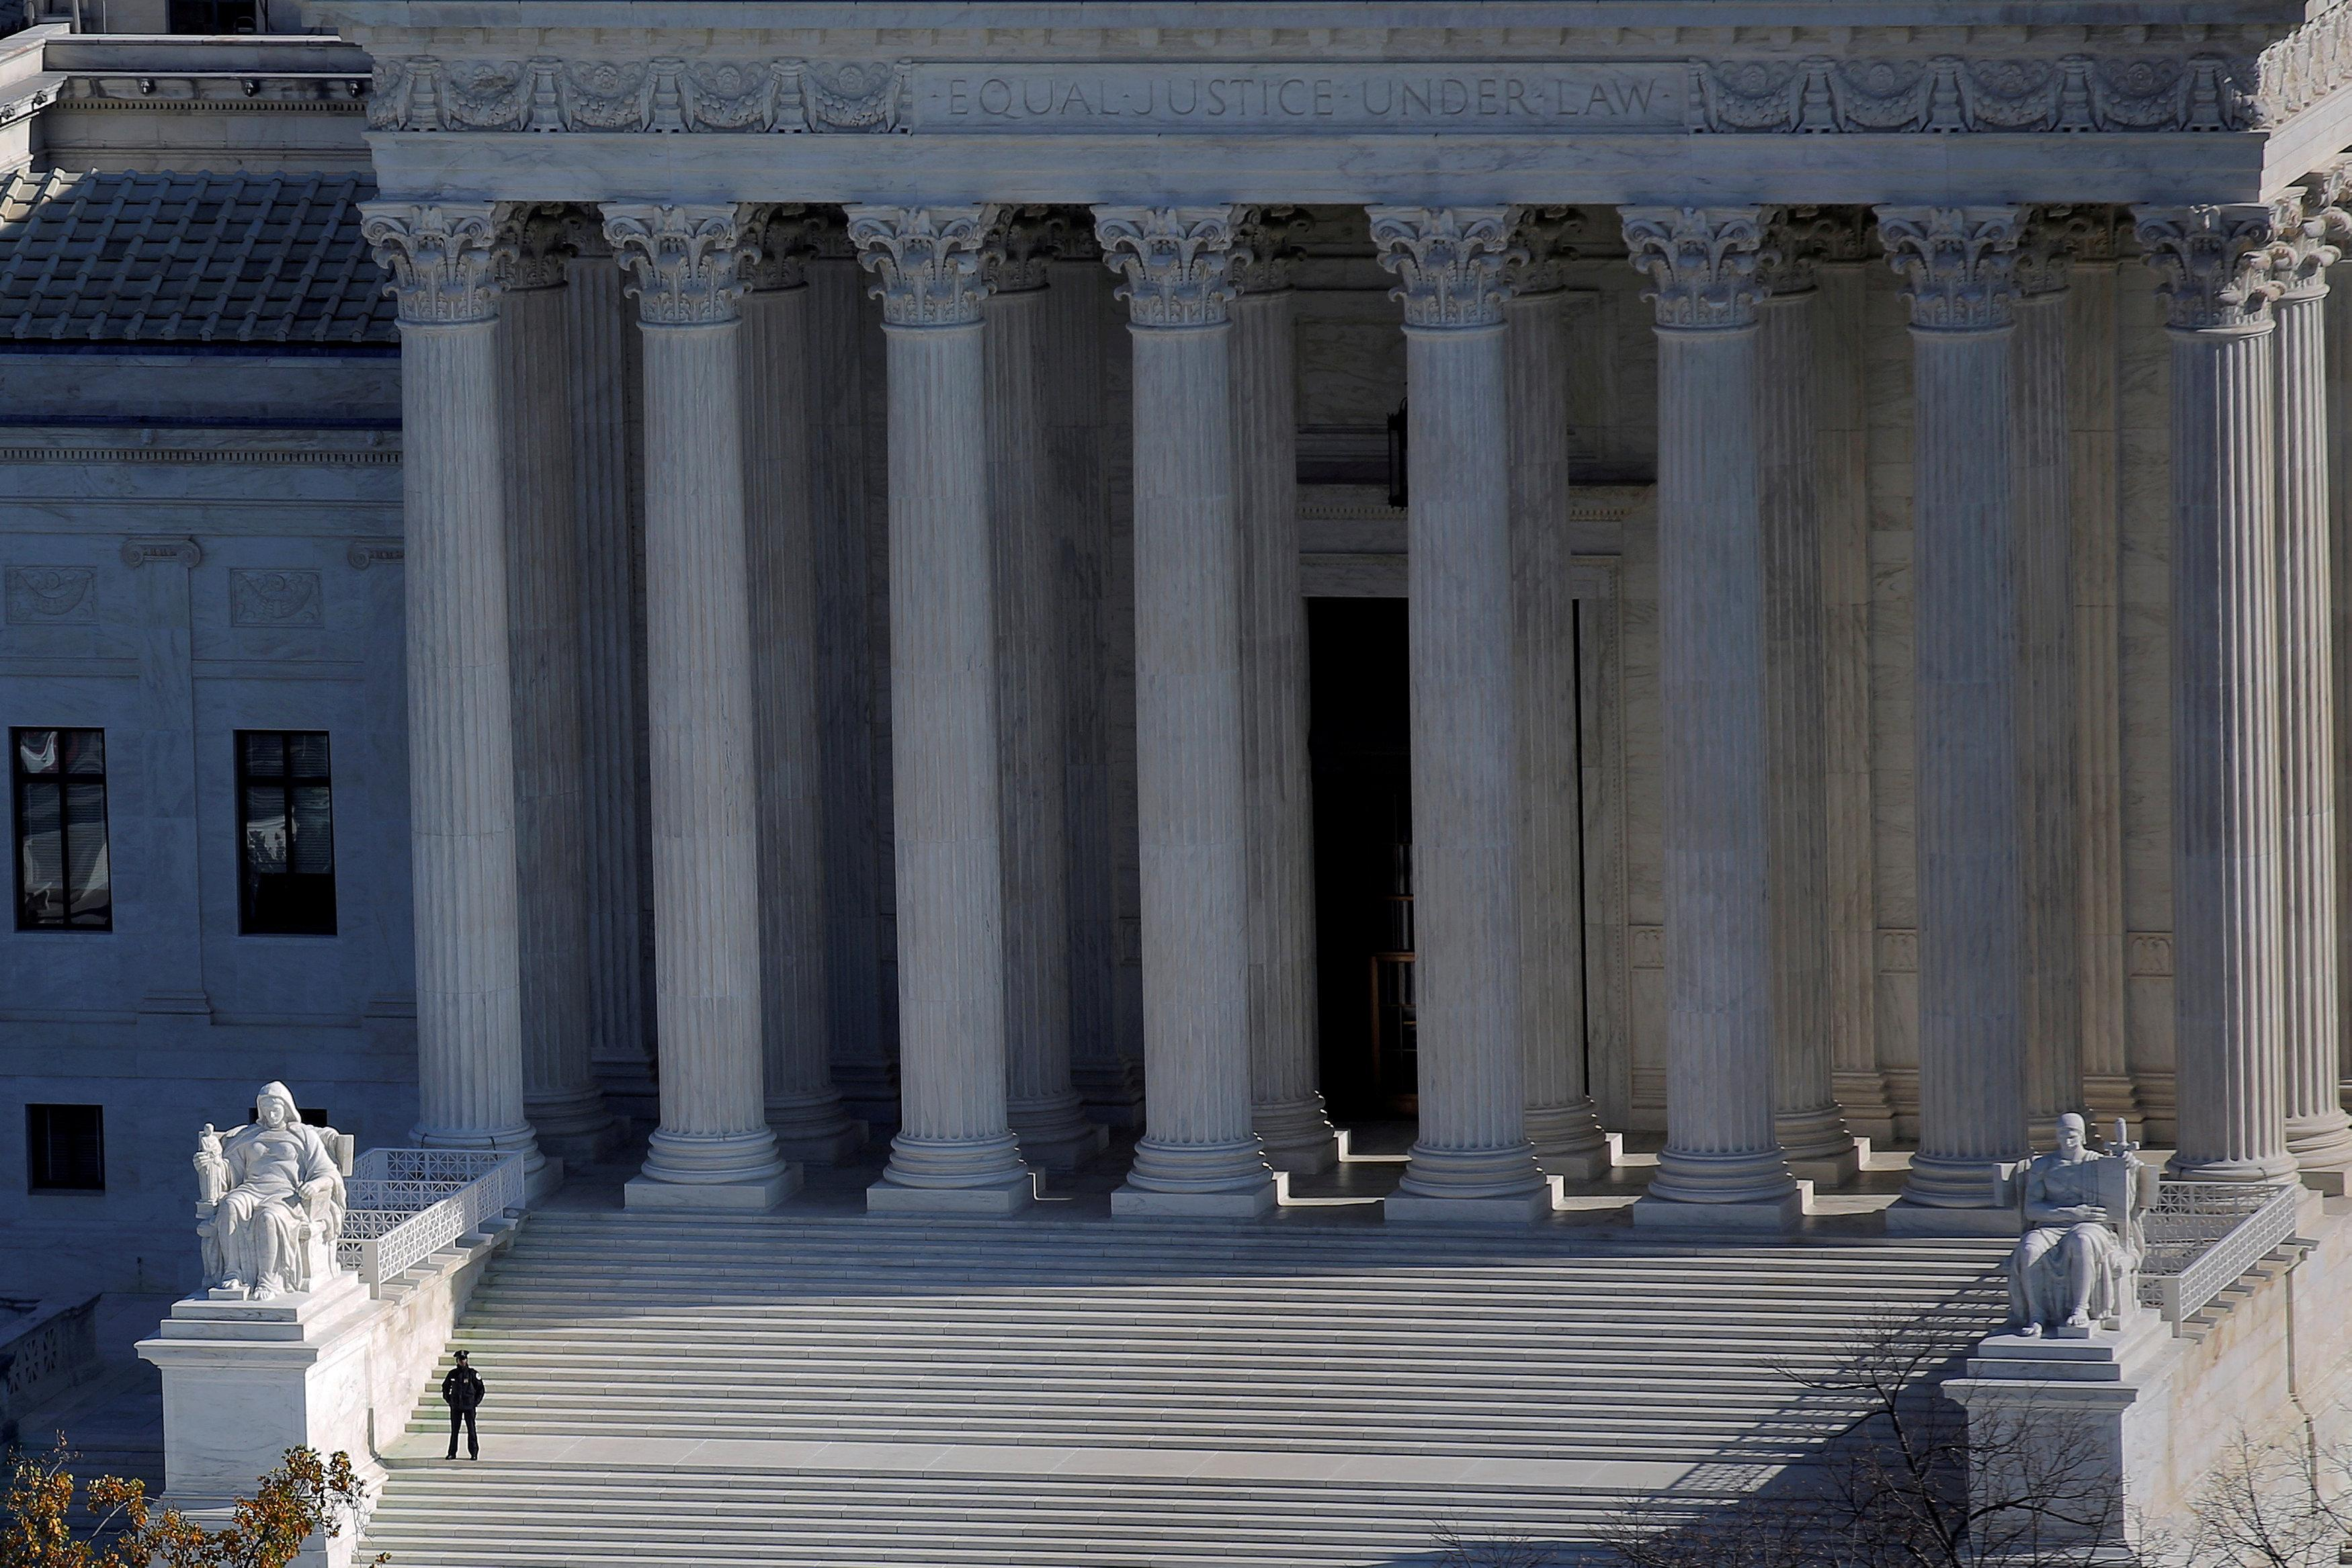 The U.S. Supreme Court building is pictured in Washington, DC, U.S., November 15, 2016. Carlos Barria